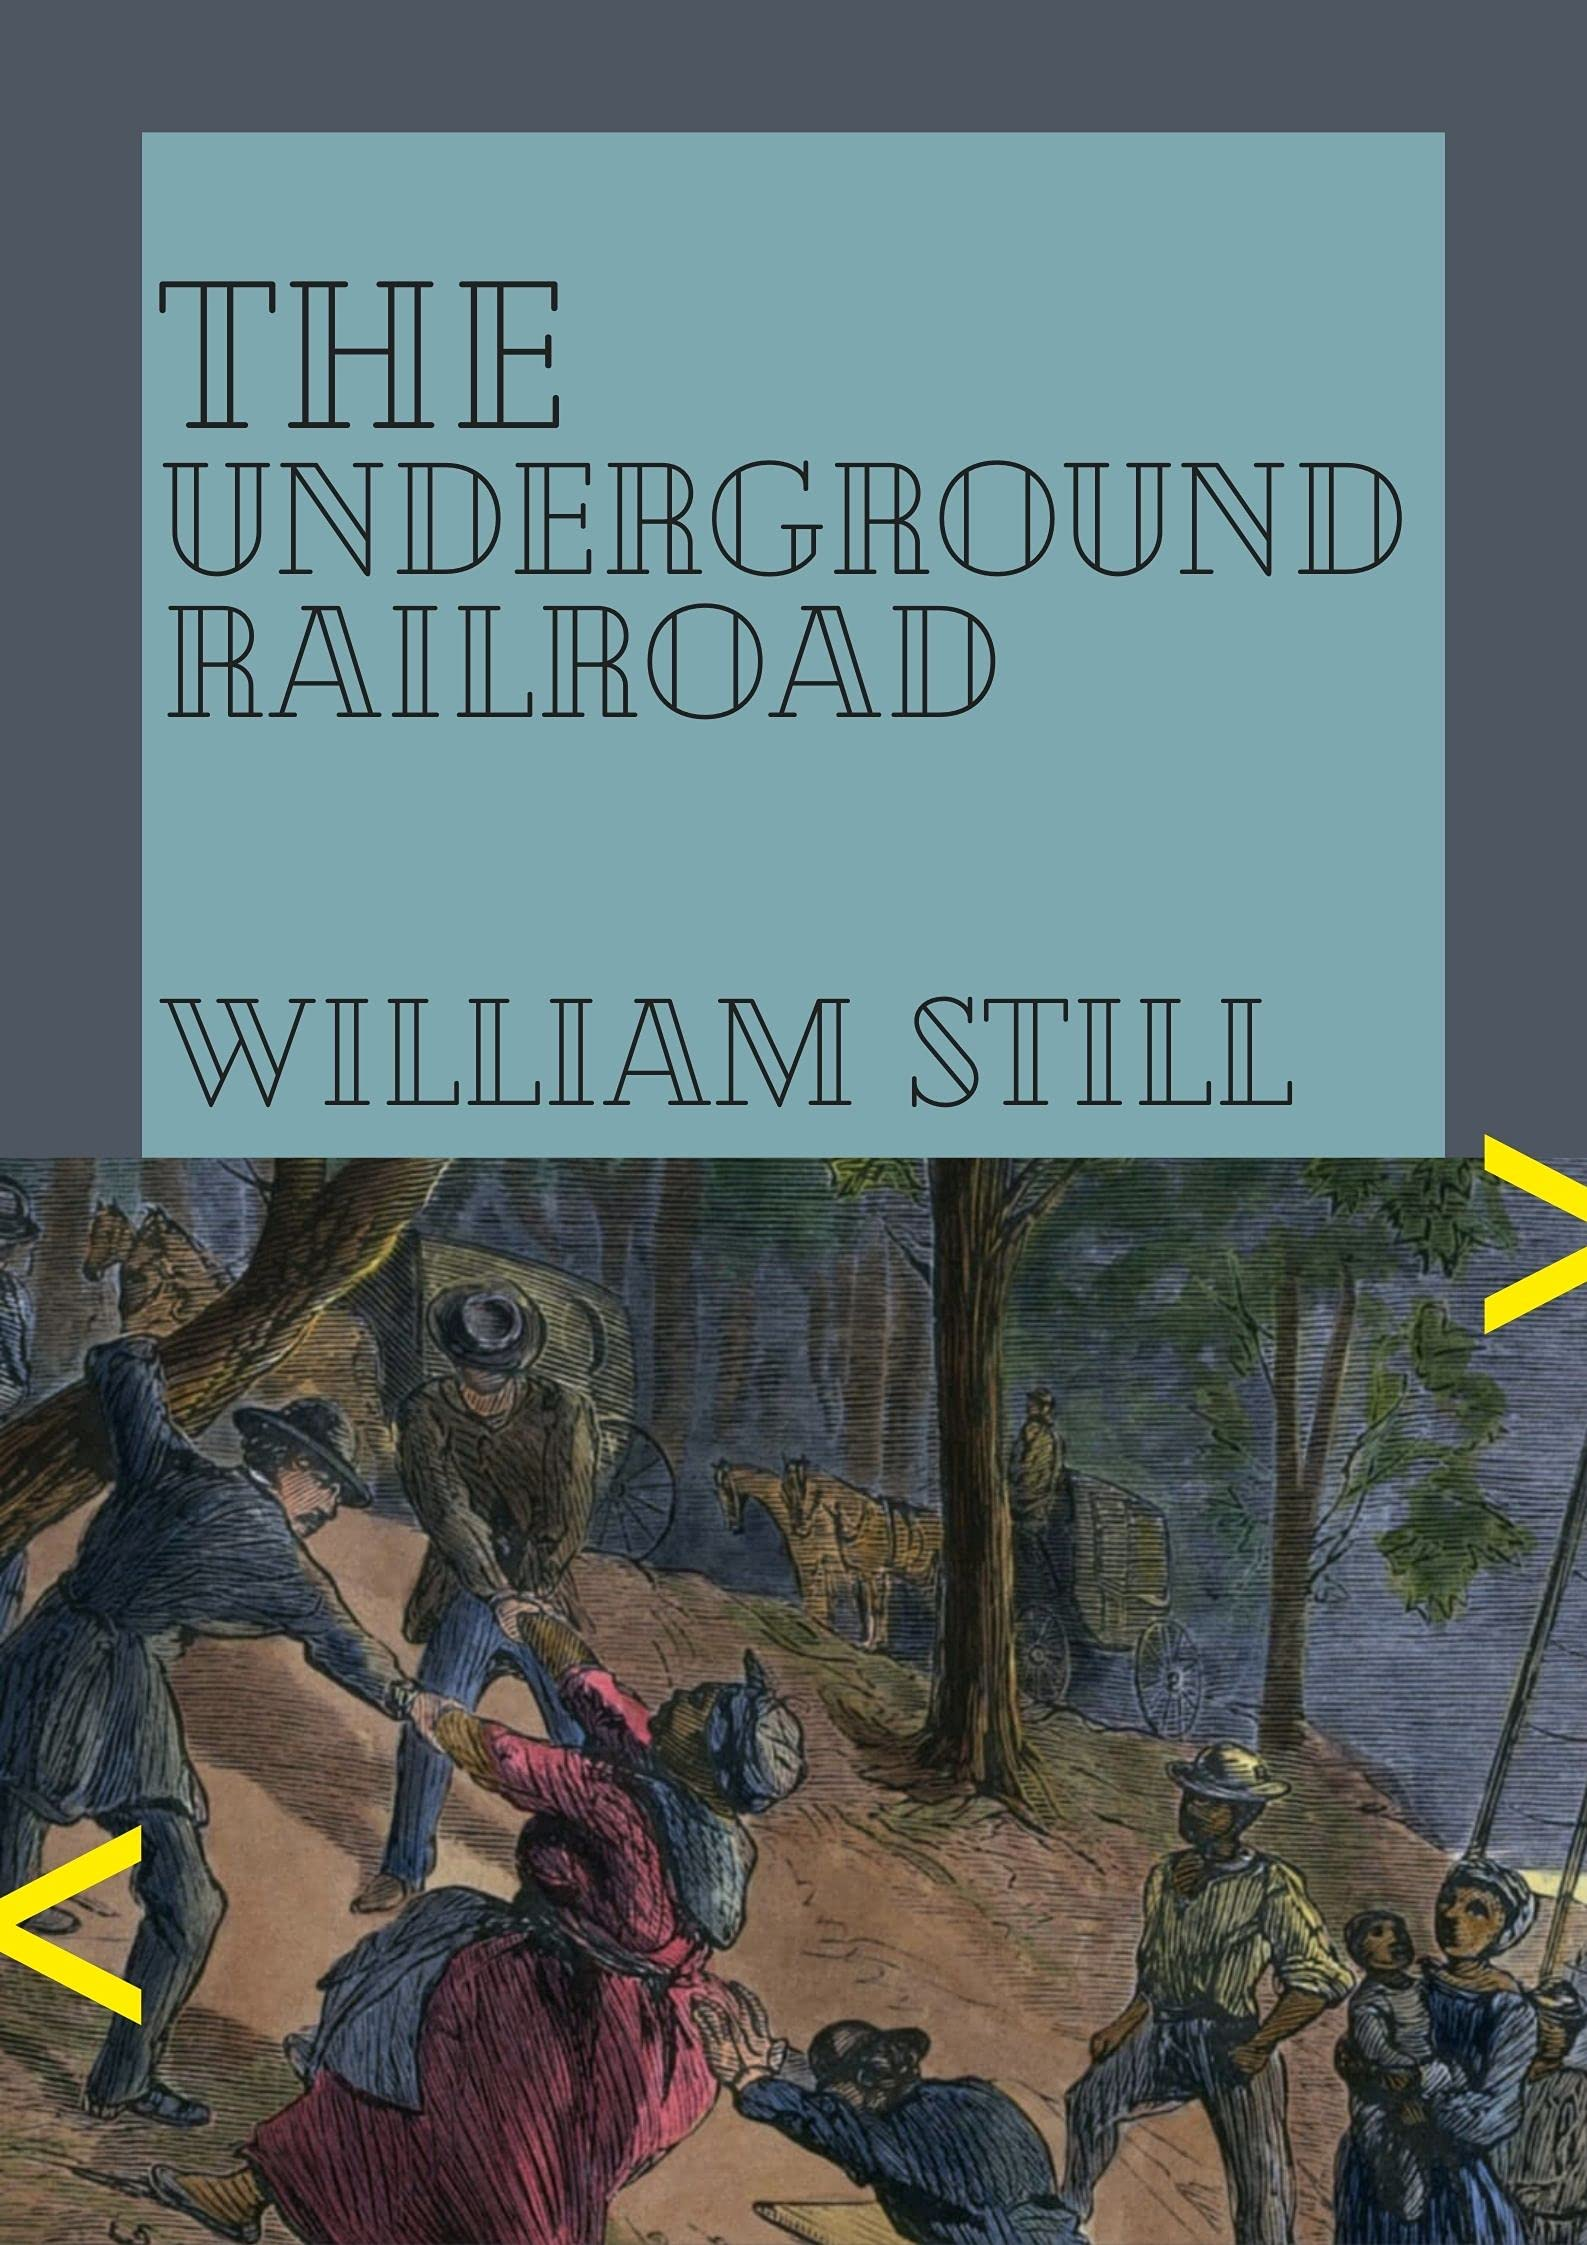 The UNDERGROUND RAILROAD Authentic Narratives and First-Hand Accounts (African American) (Annotated)